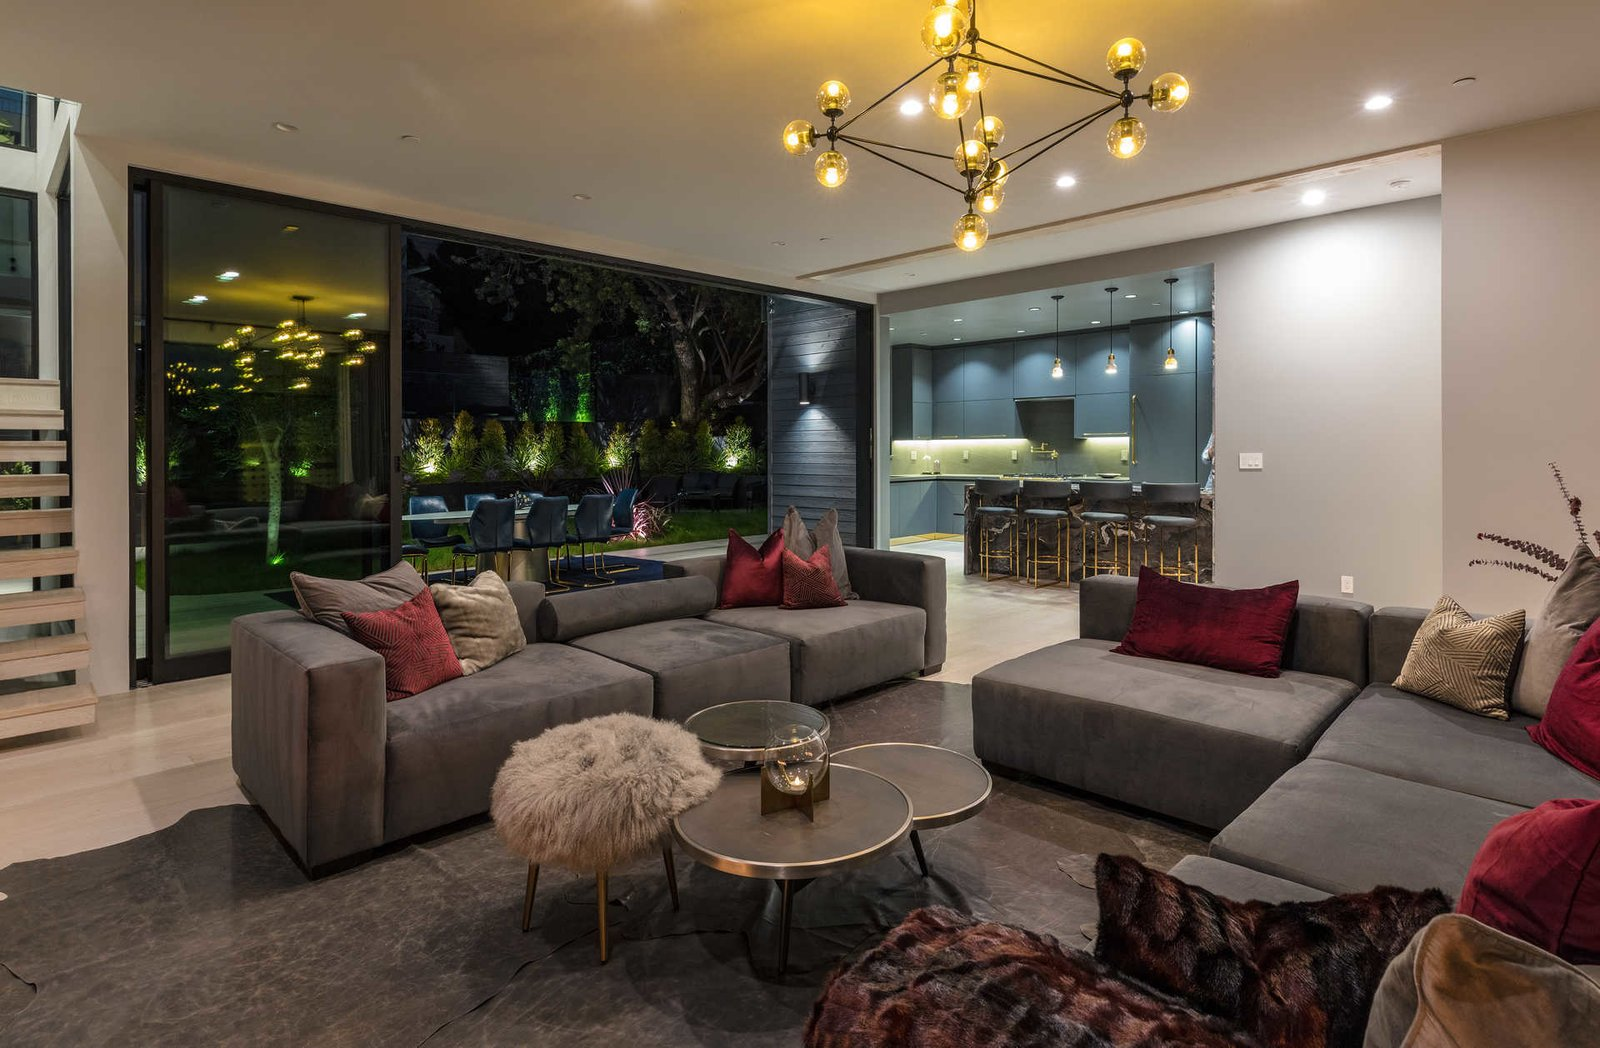 Living Room, Sofa, Coffee Tables, Light Hardwood Floor, Ceiling Lighting, and Sectional  Italian Modernist Home